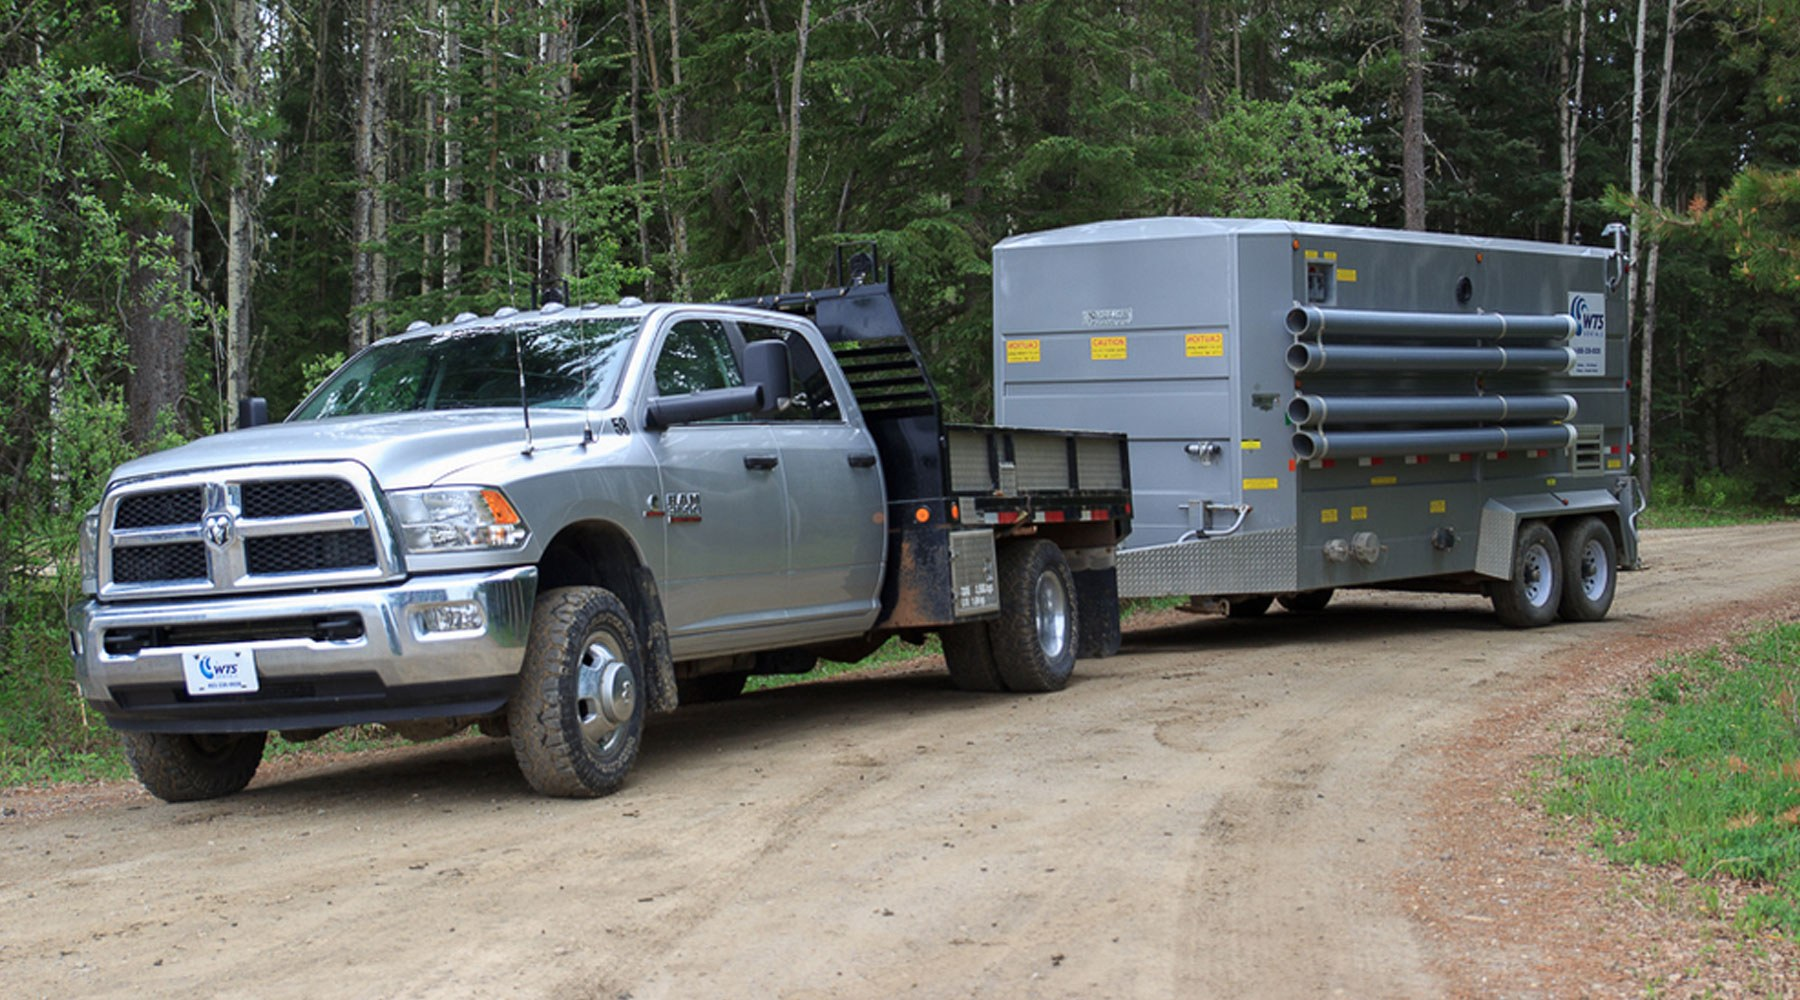 A pickup truck transporting a mobile accommodation unit